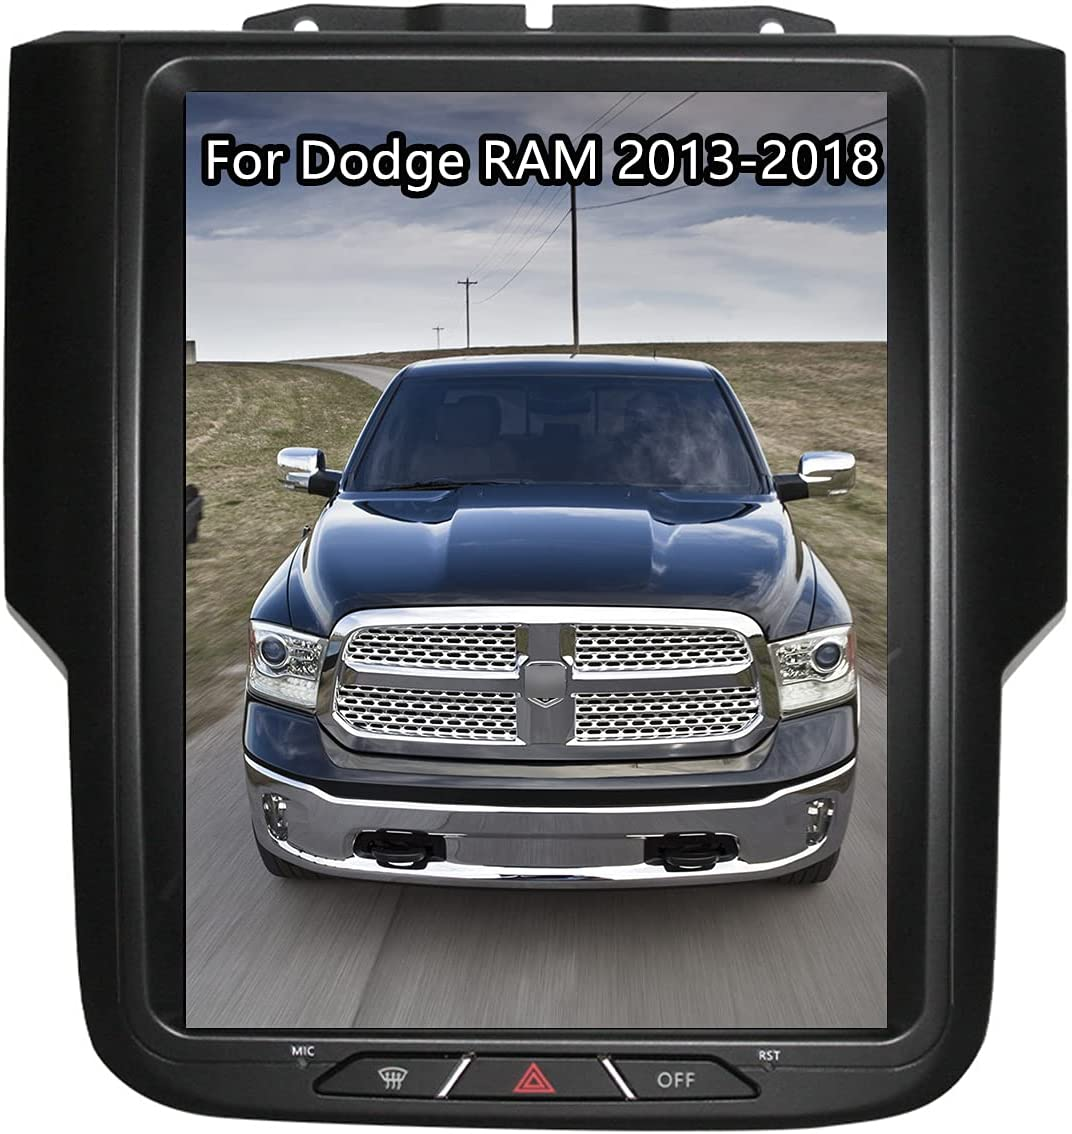 ZWNAV Android Tesla Style Radio for NEW Popular shop is the lowest price challenge 1500 Car 2013-2018 Dodge Ram